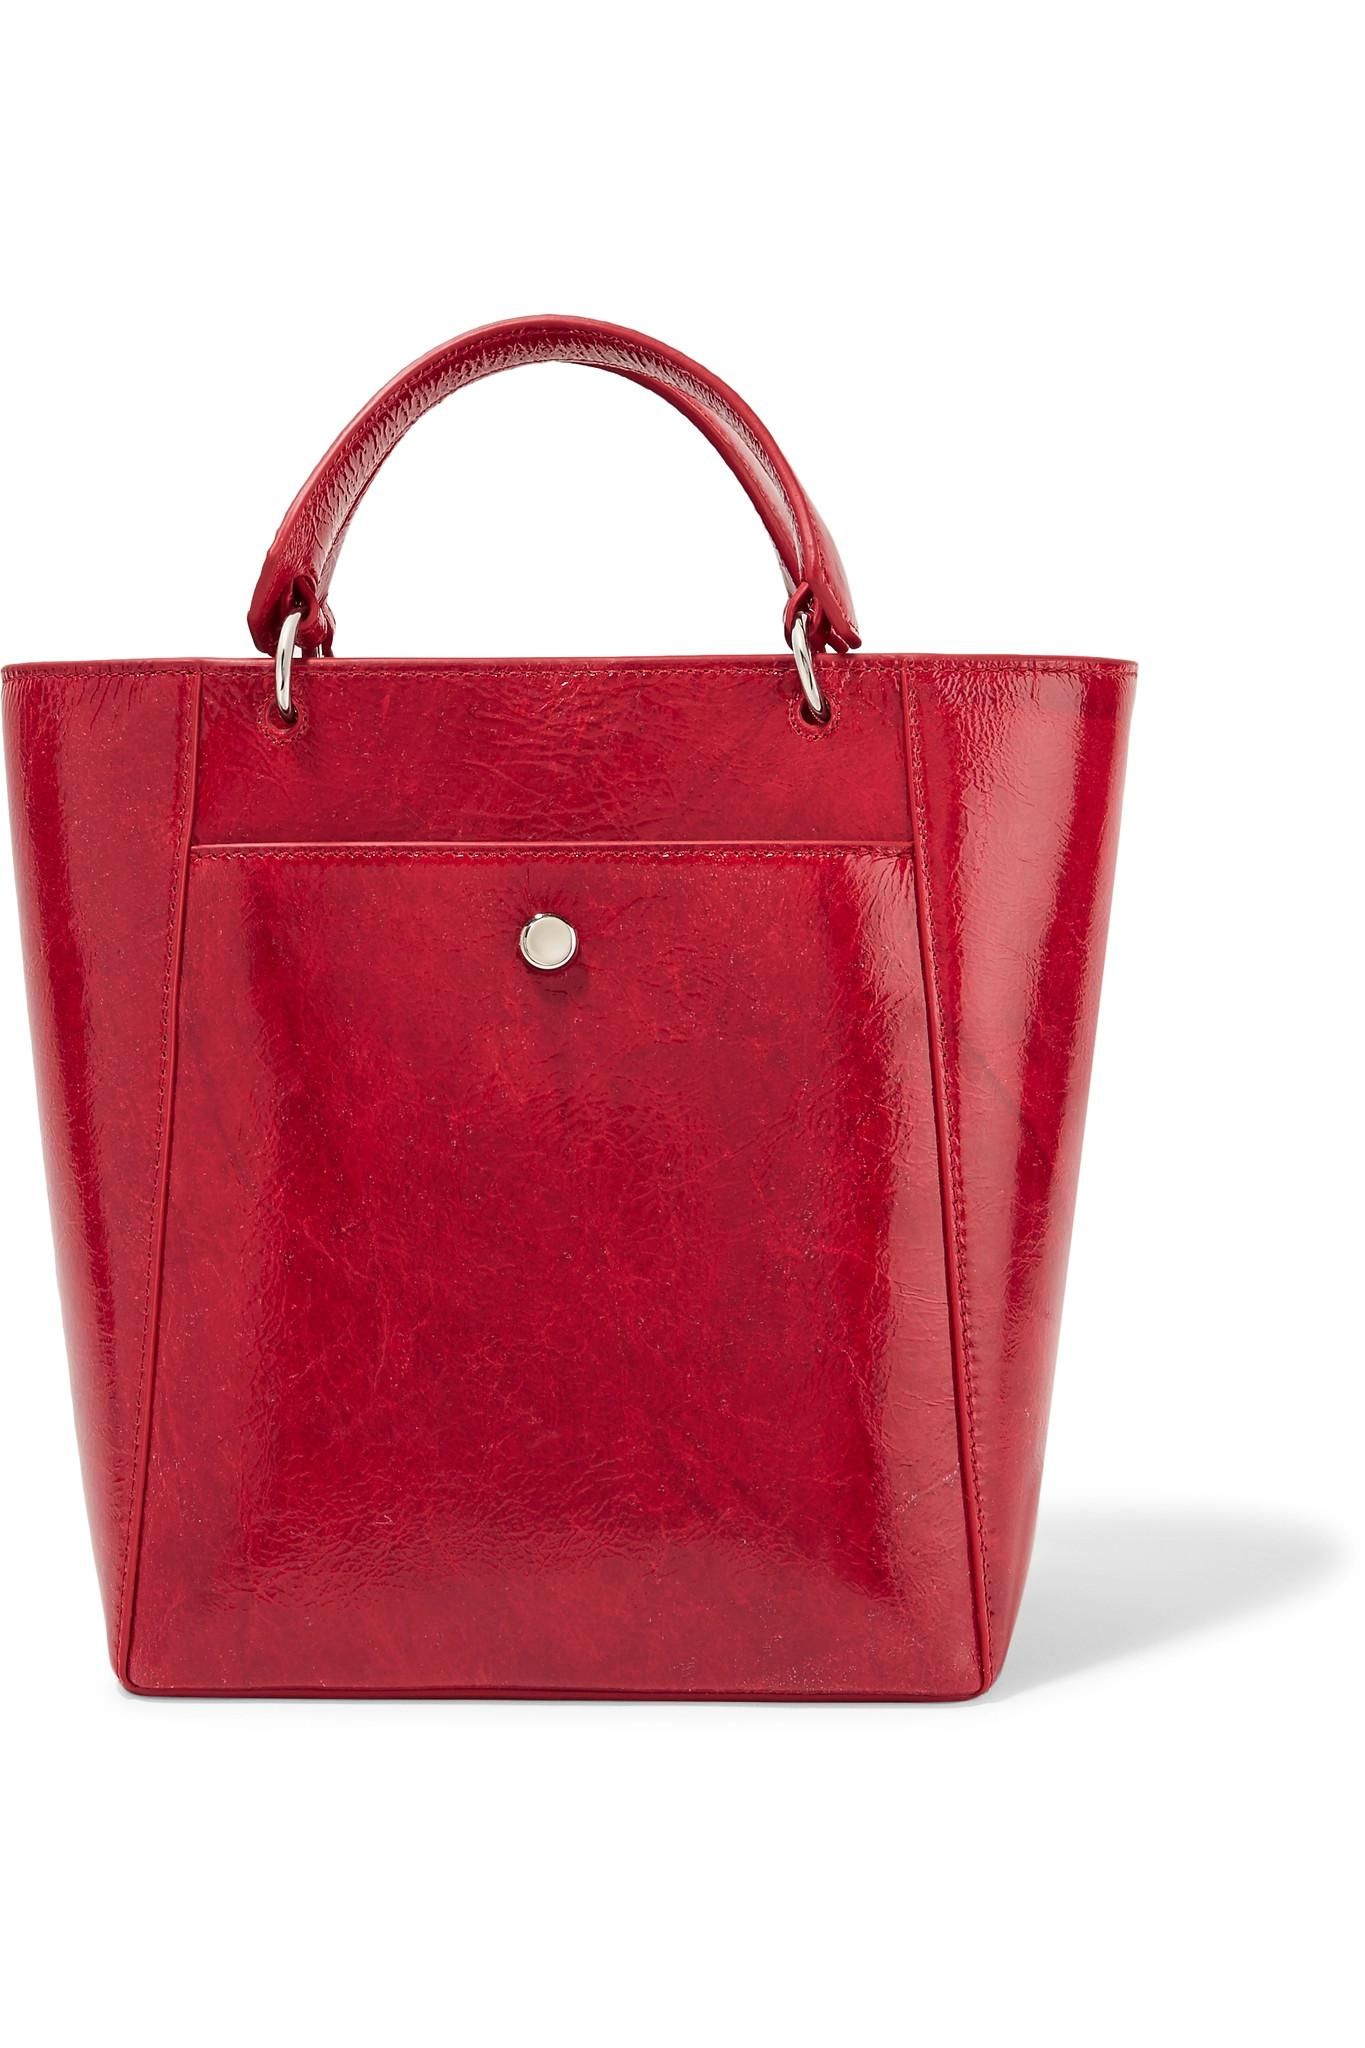 08c93a8fa27 Elizabeth and James Eloise Small Patent Textured-leather Tote